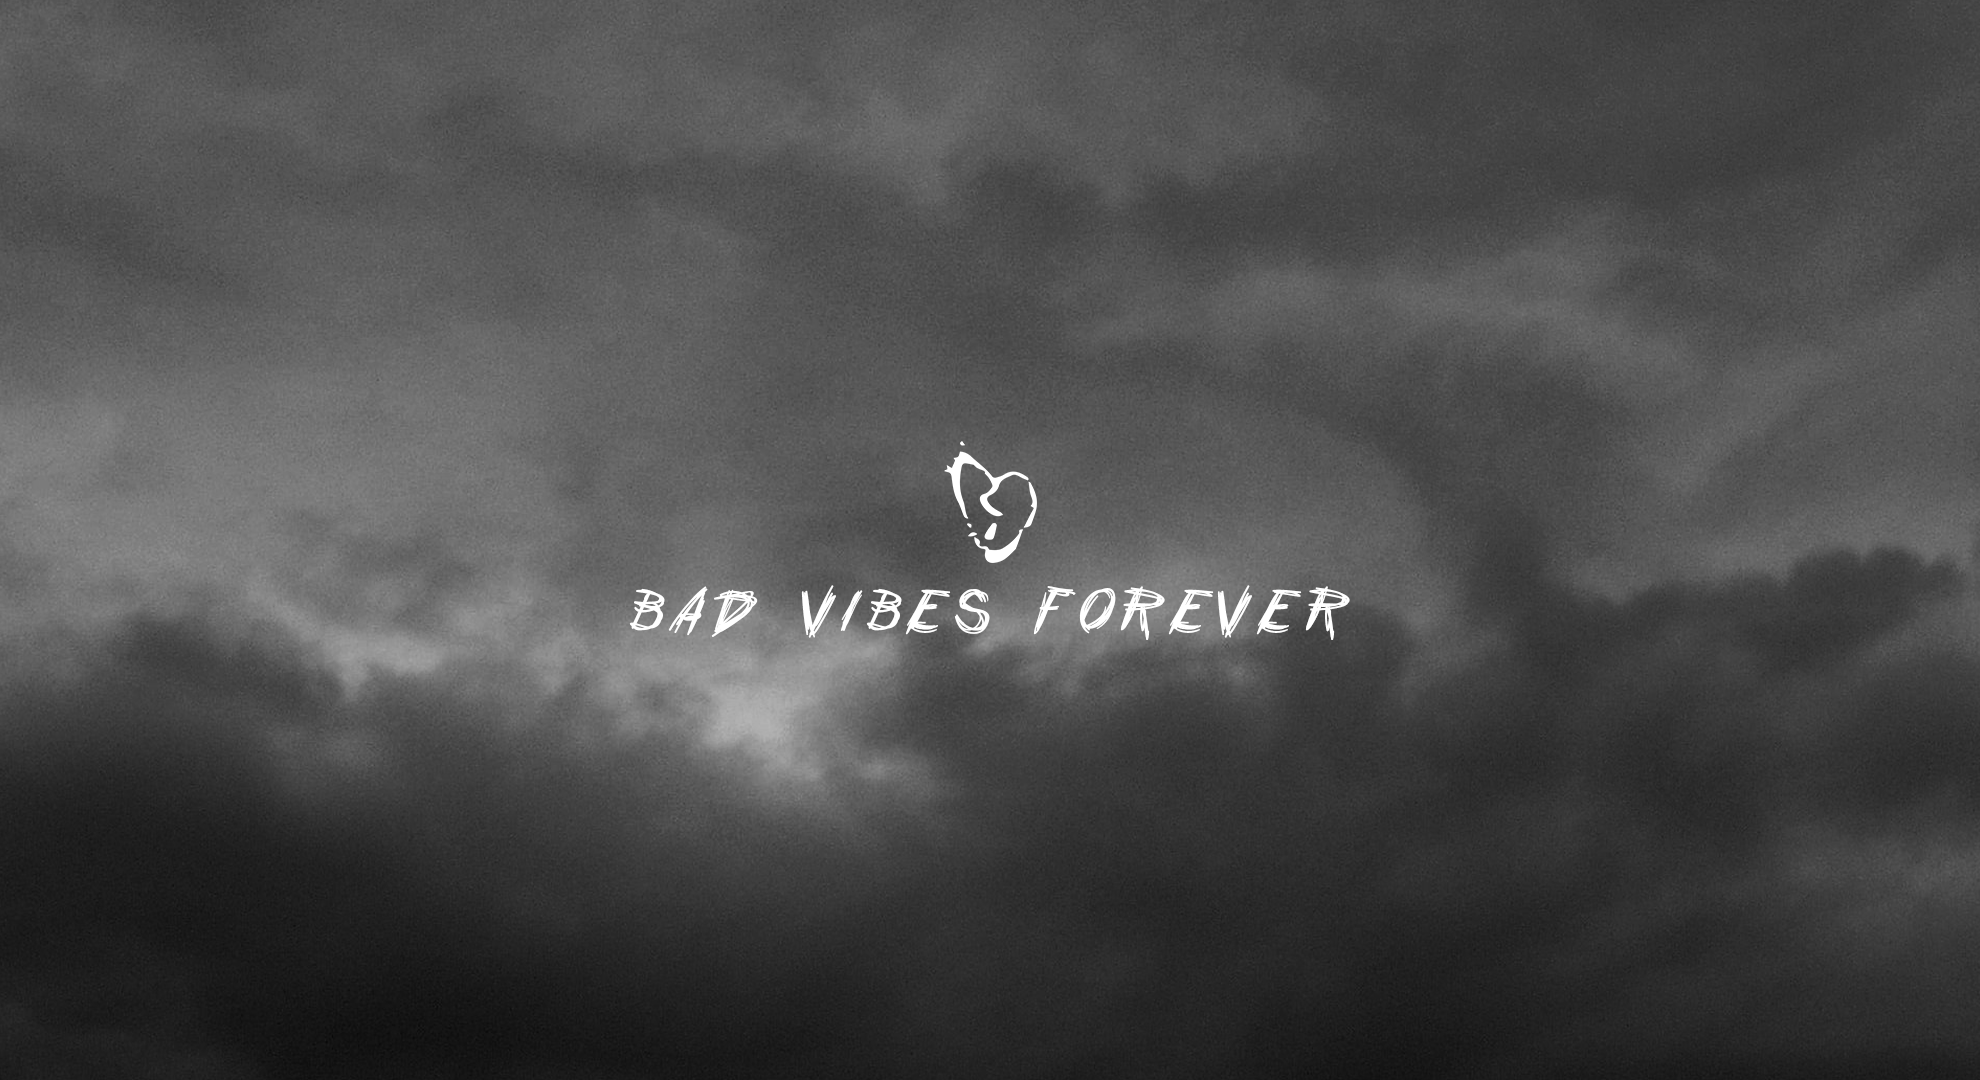 1980x1080 Bad Vibes Forever Desktop Wallpaper (1920x1080) : XXXTENTACION